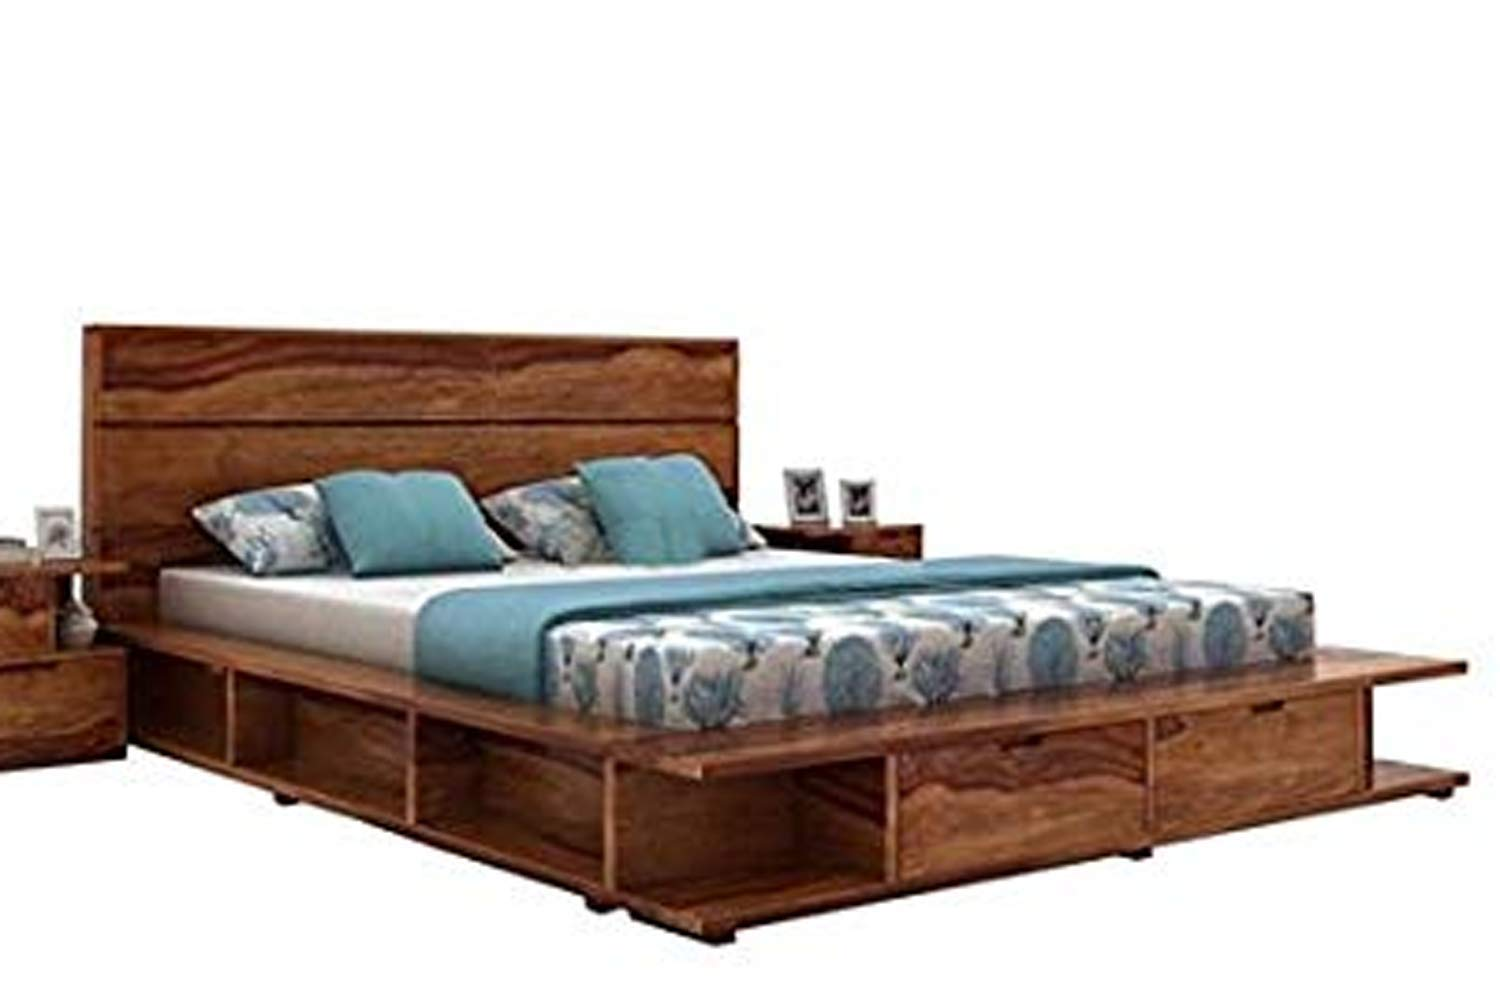 Phenomenal Aprodz Solid Wood Cincinnati Queen Size Bed With Storage For Download Free Architecture Designs Scobabritishbridgeorg